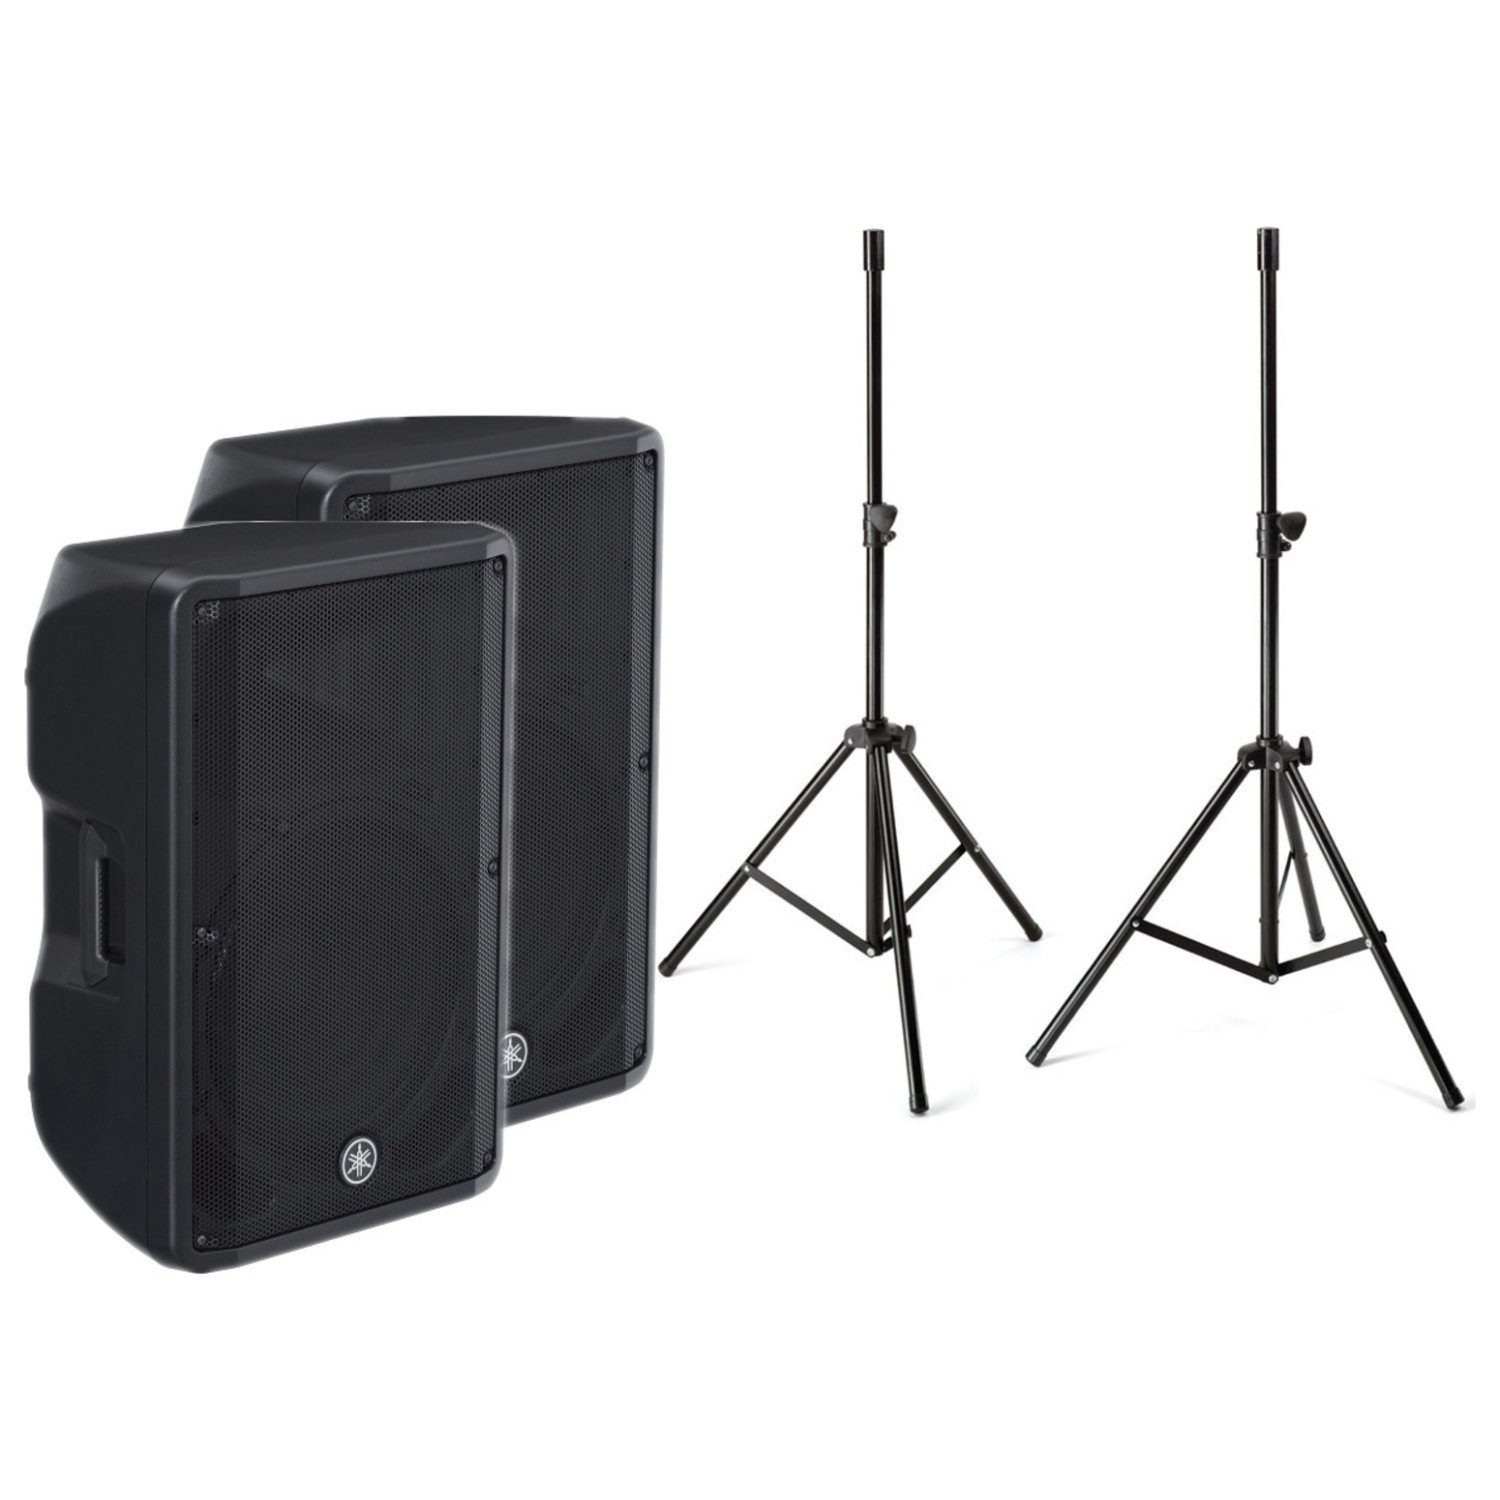 Yamaha CBR-15 15 Inch Professional Outstanding Performance 2 Way Passive Bass Reflex Powered Speaker in Black (Pair) with a pair of Speaker Stands by Yamaha